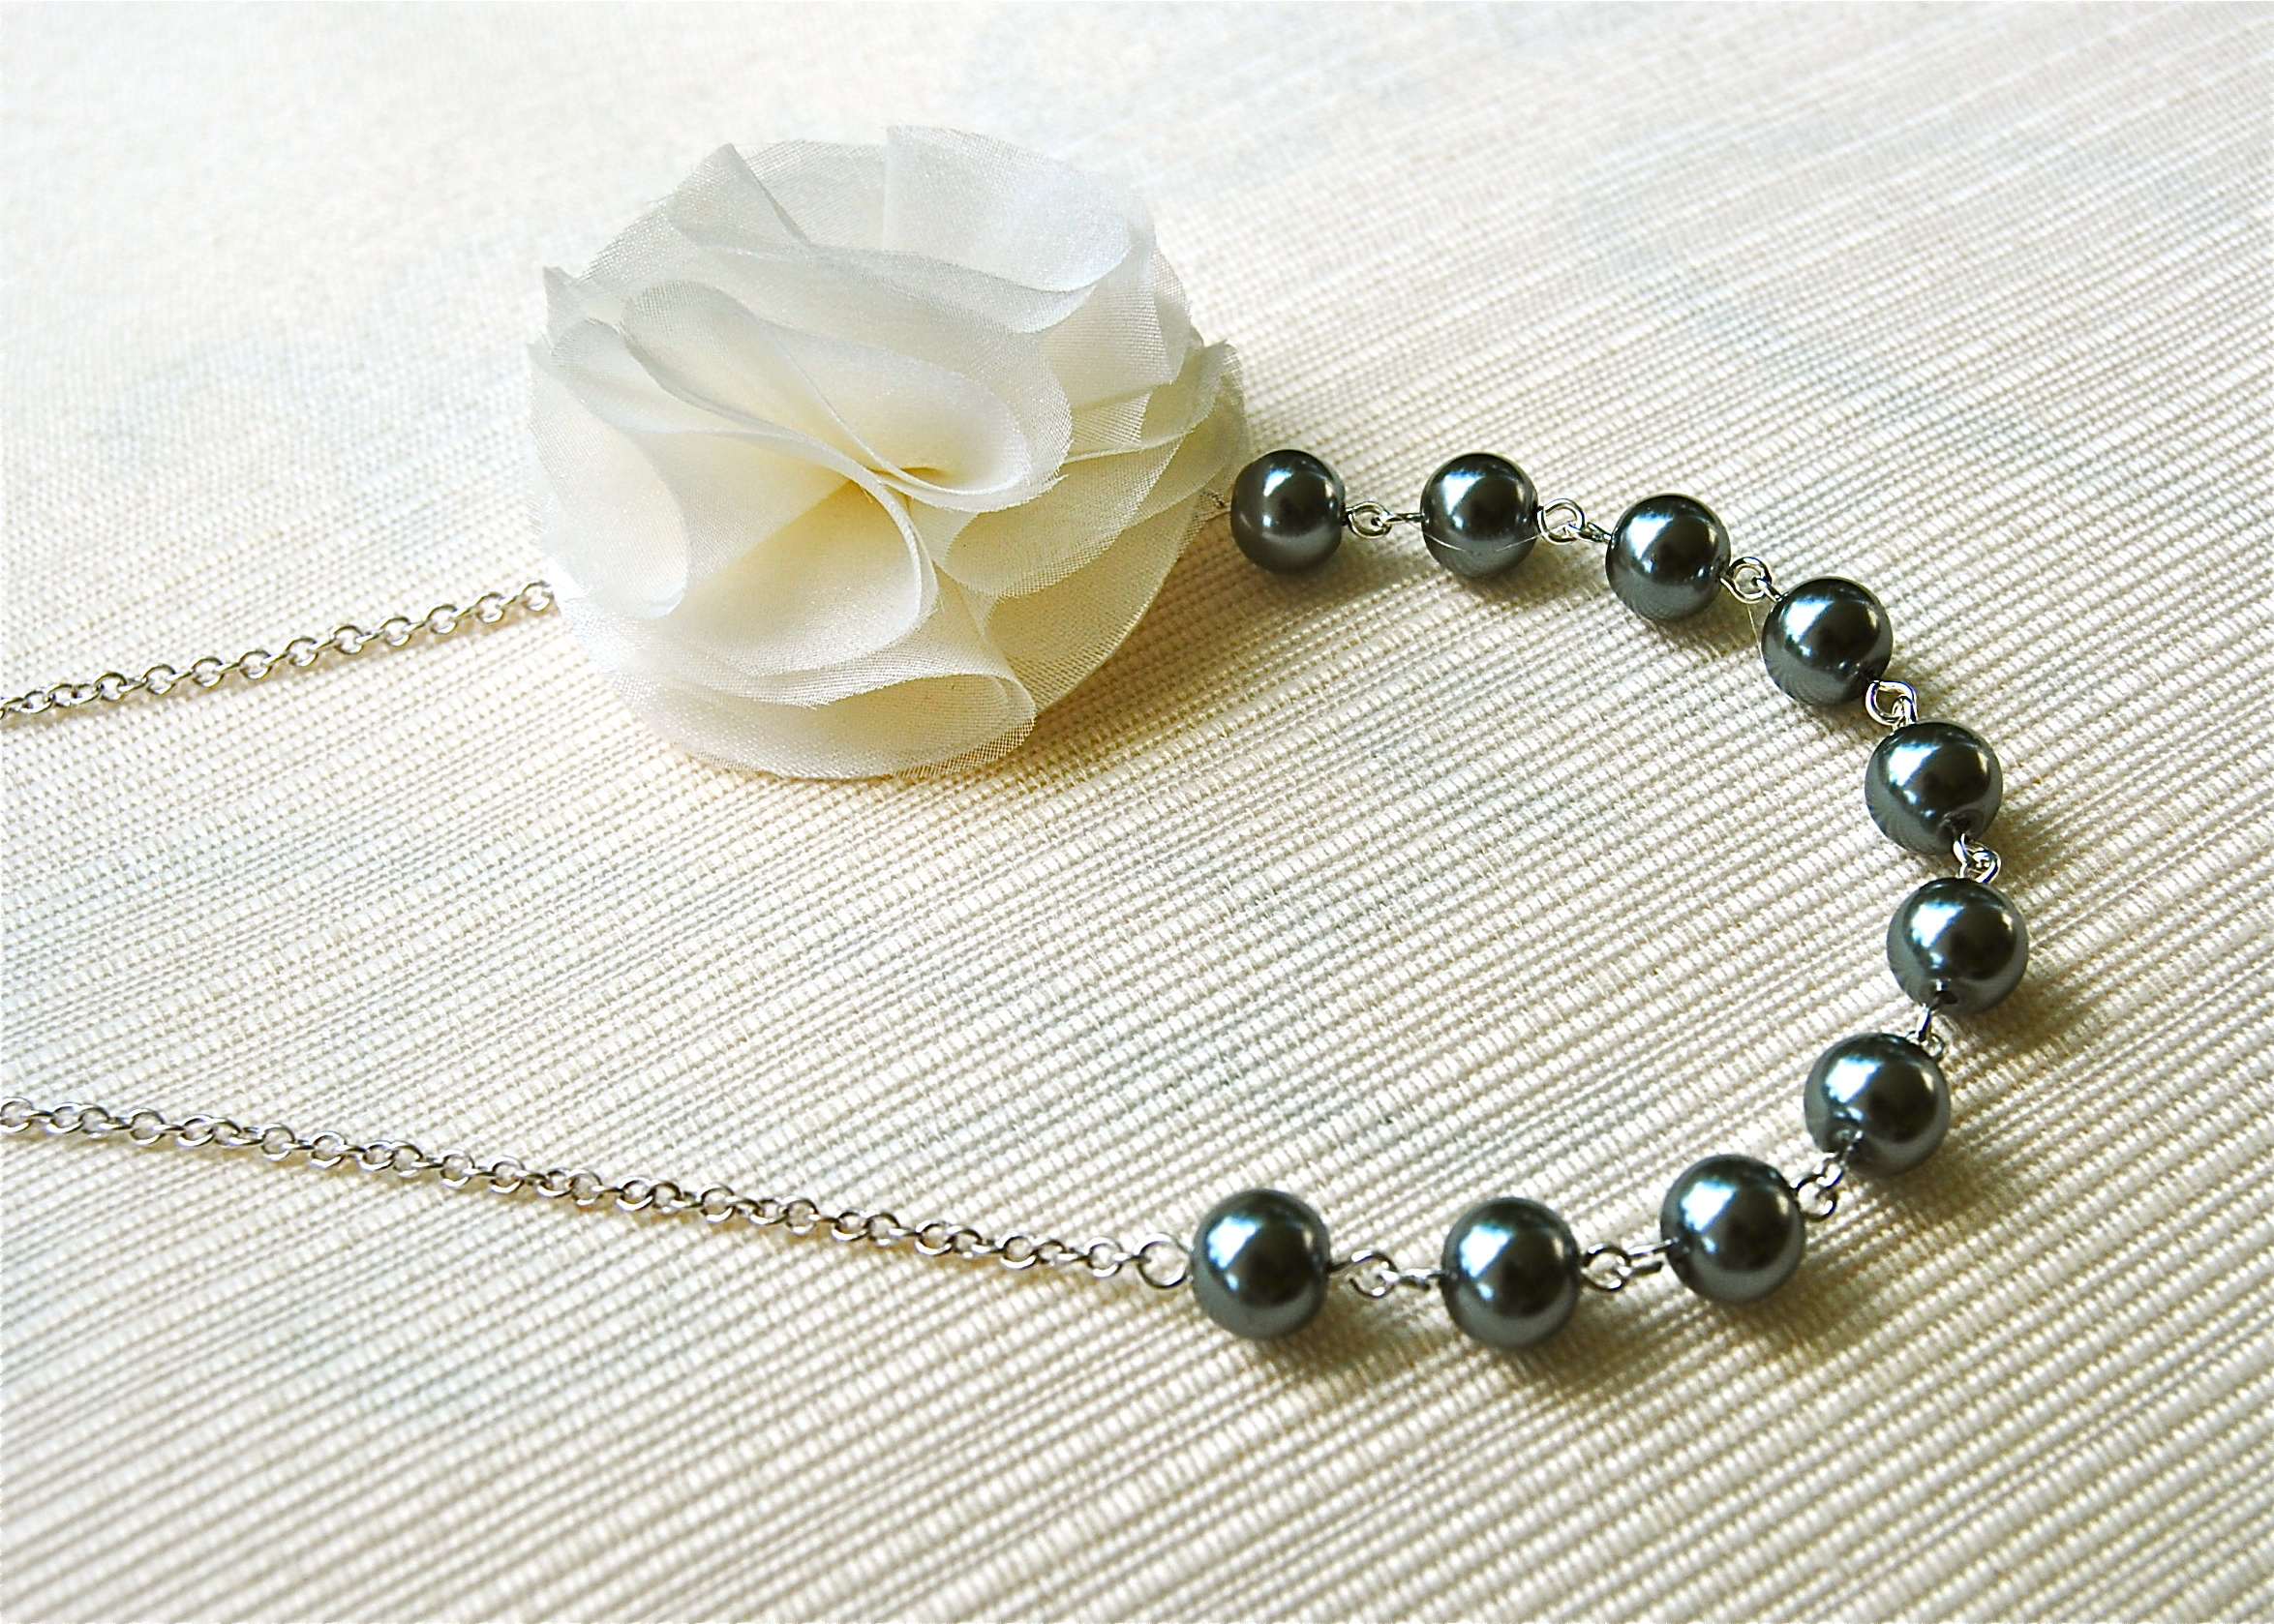 Flowers & Decor, Jewelry, Flower, Bridesmaid, Pearl, Blustarfruit